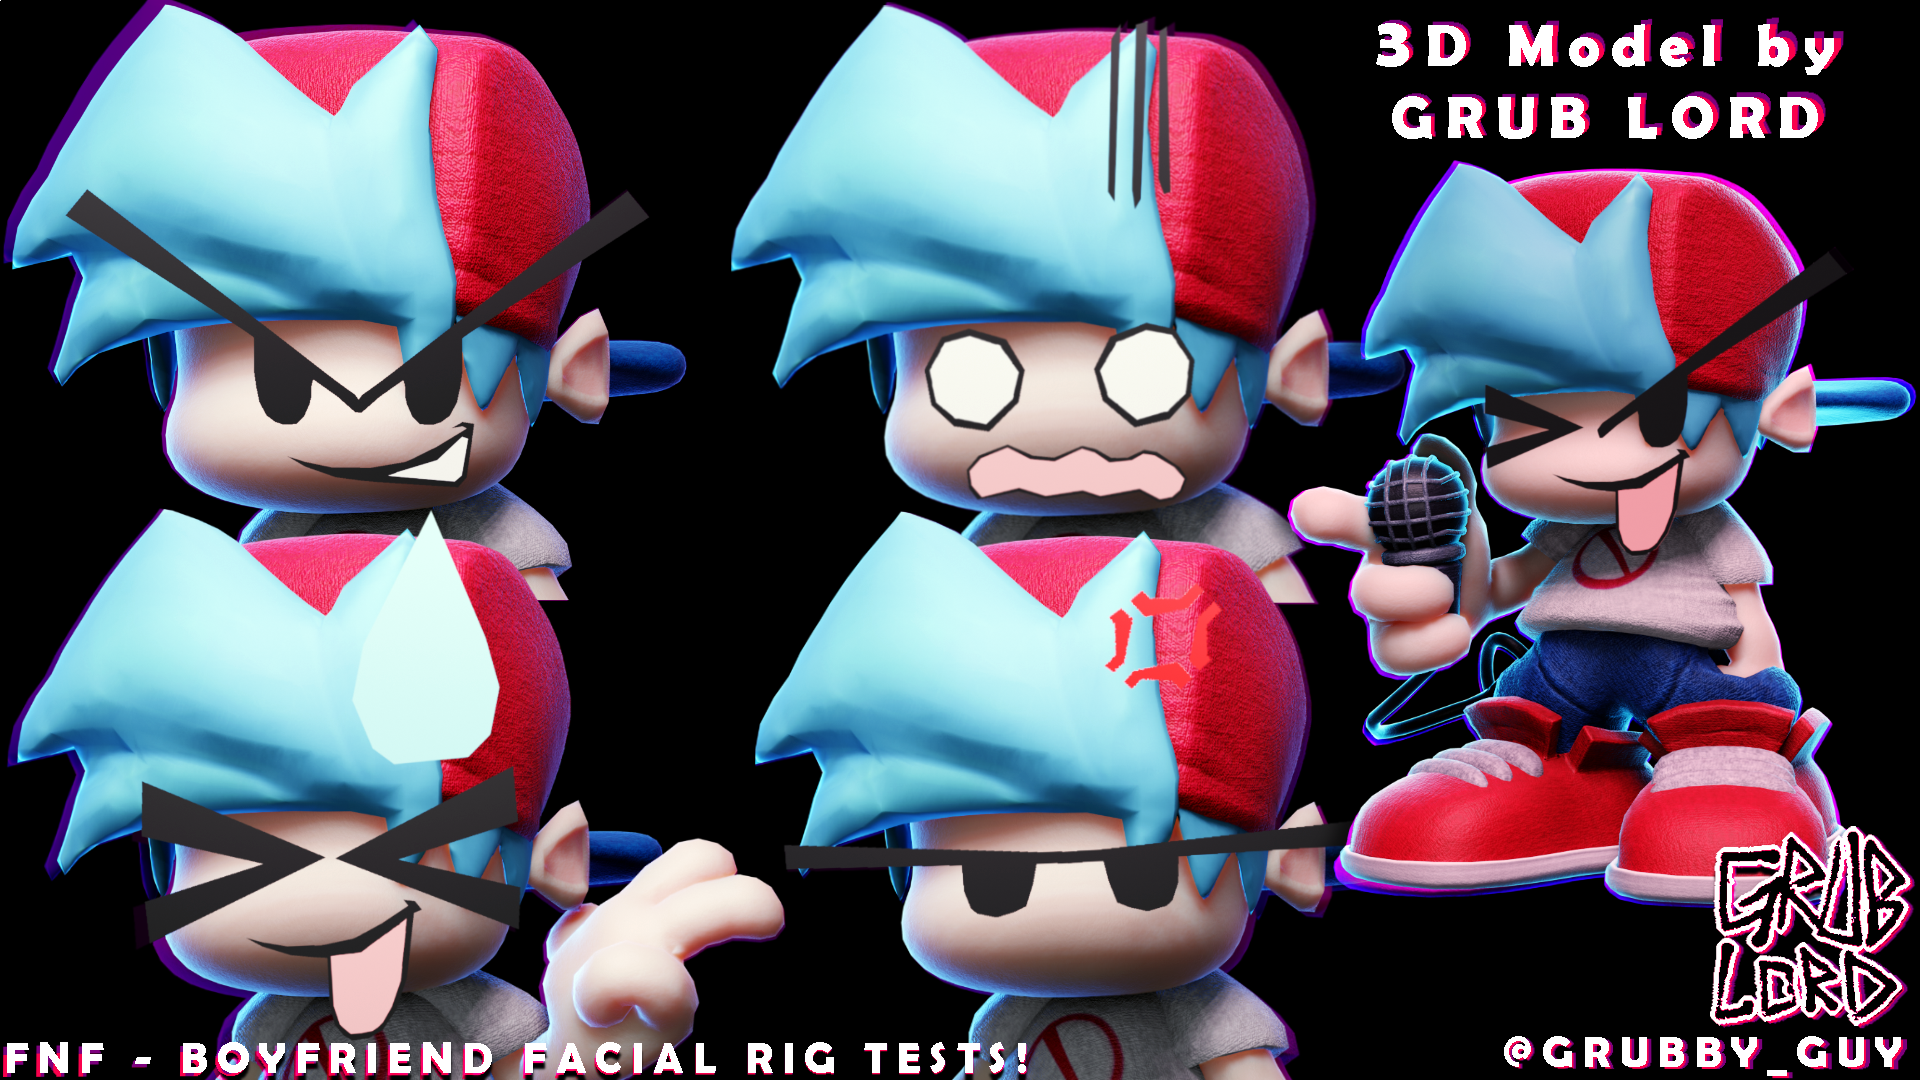 FNF - BOYFRIEND 3D FACERIG TESTS!